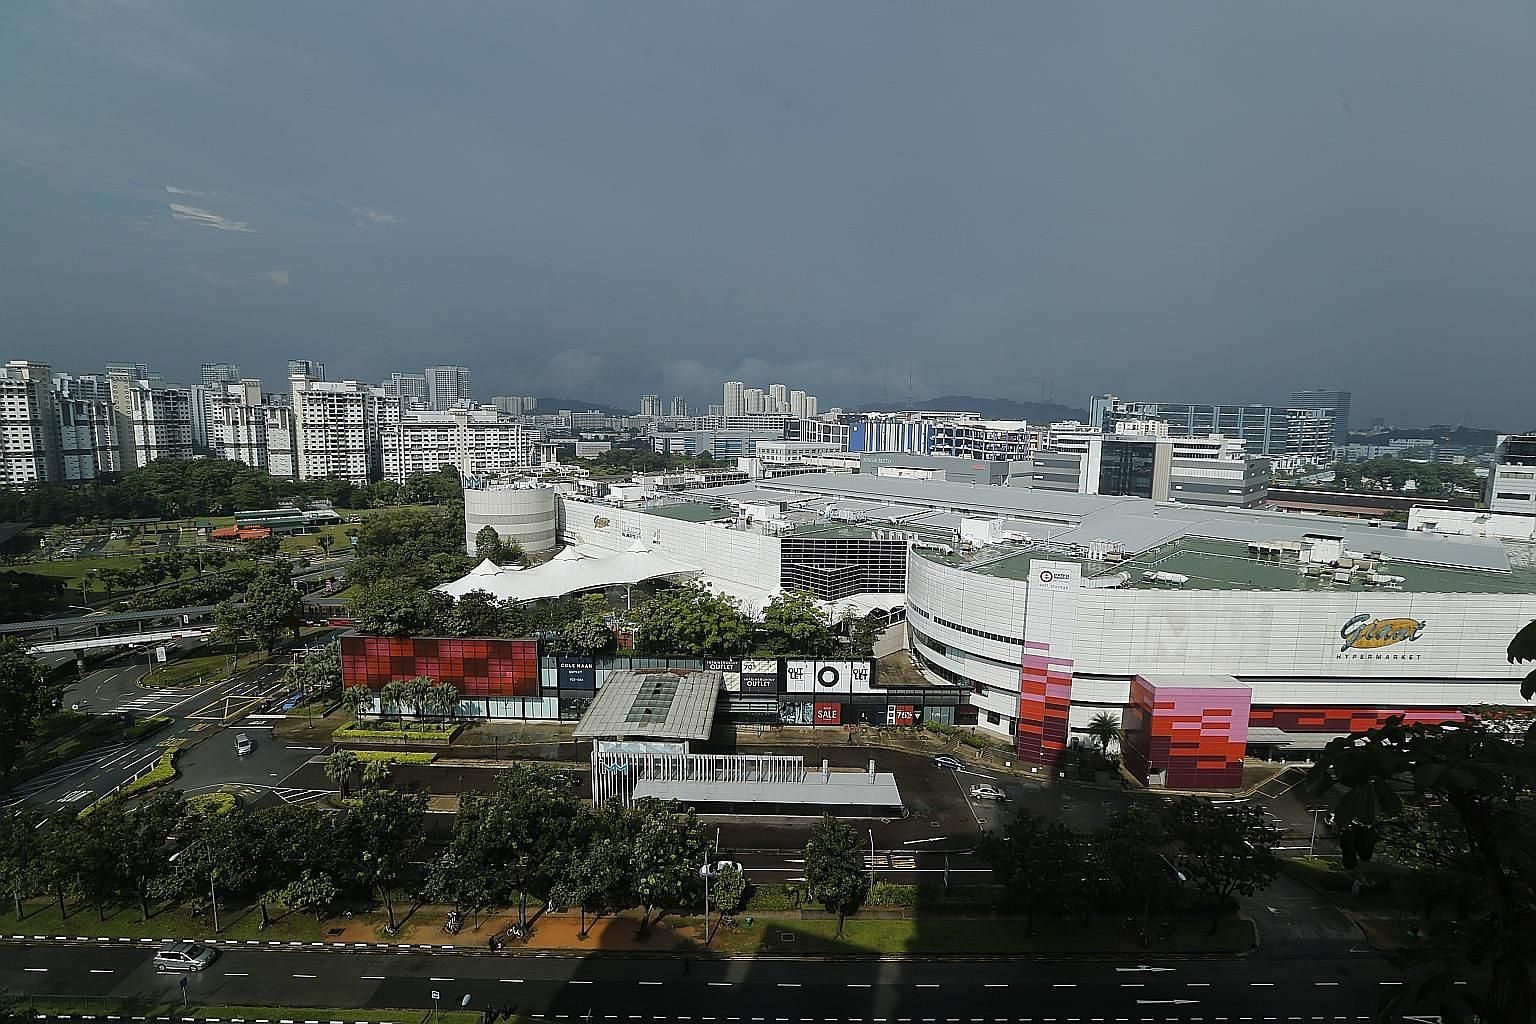 Jurong East's newly expanded IMM mall is famous for its many retail factory outlets. Four other malls - JCube, Jem, Westgate and Big Box - have sprung up in the area in the last five years.